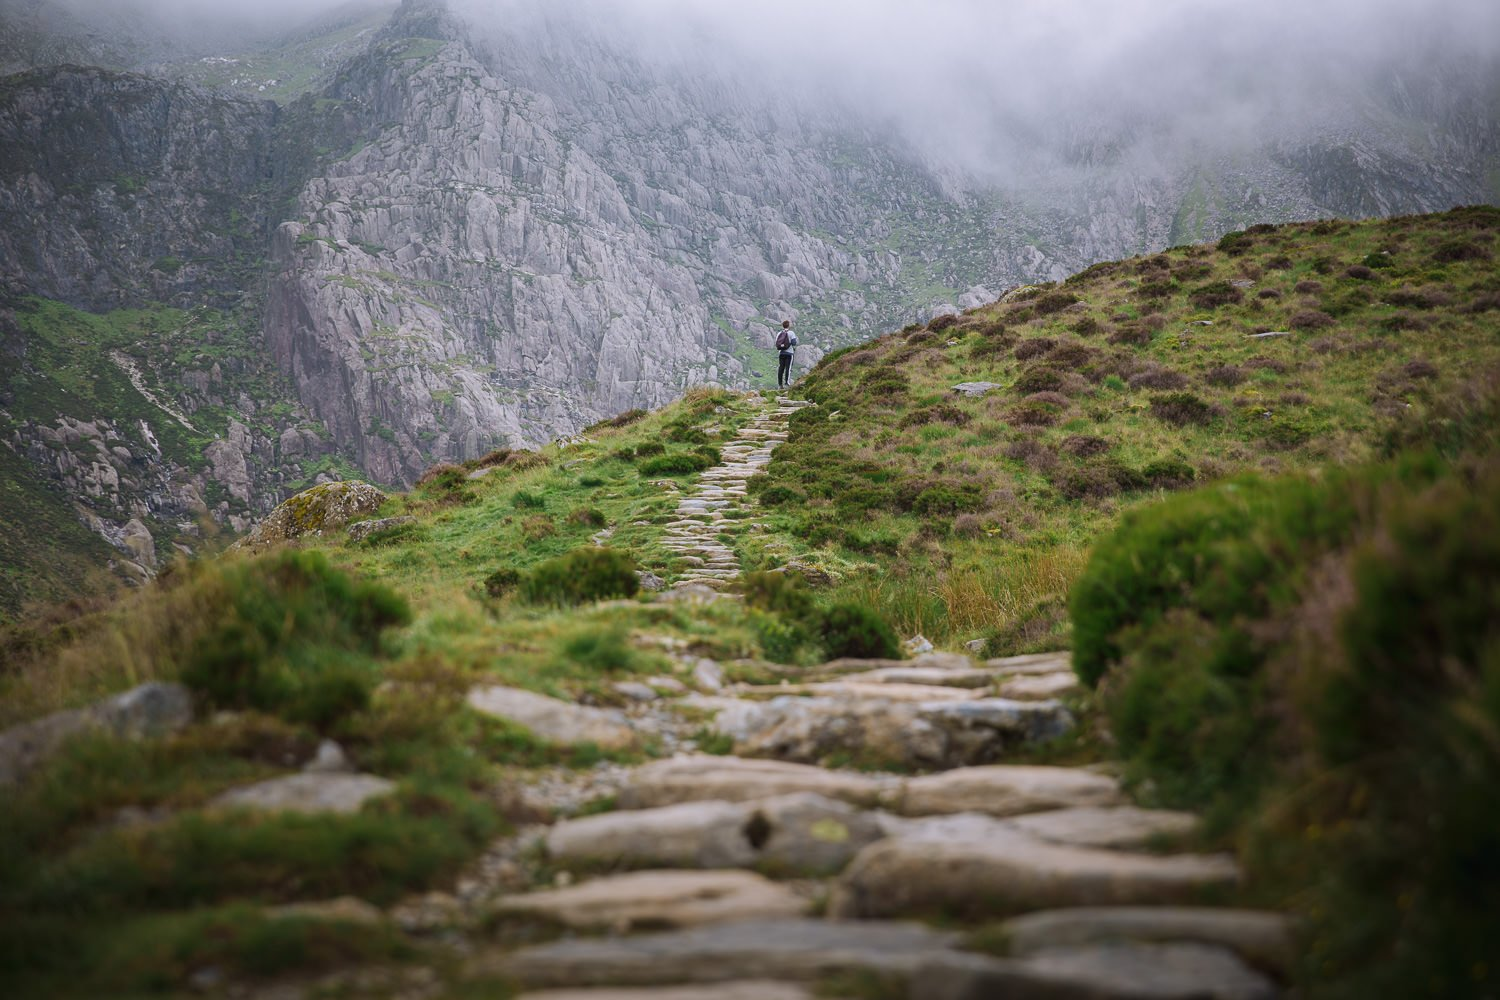 walking up a rocky hiking trail with a wall of mountains in the background